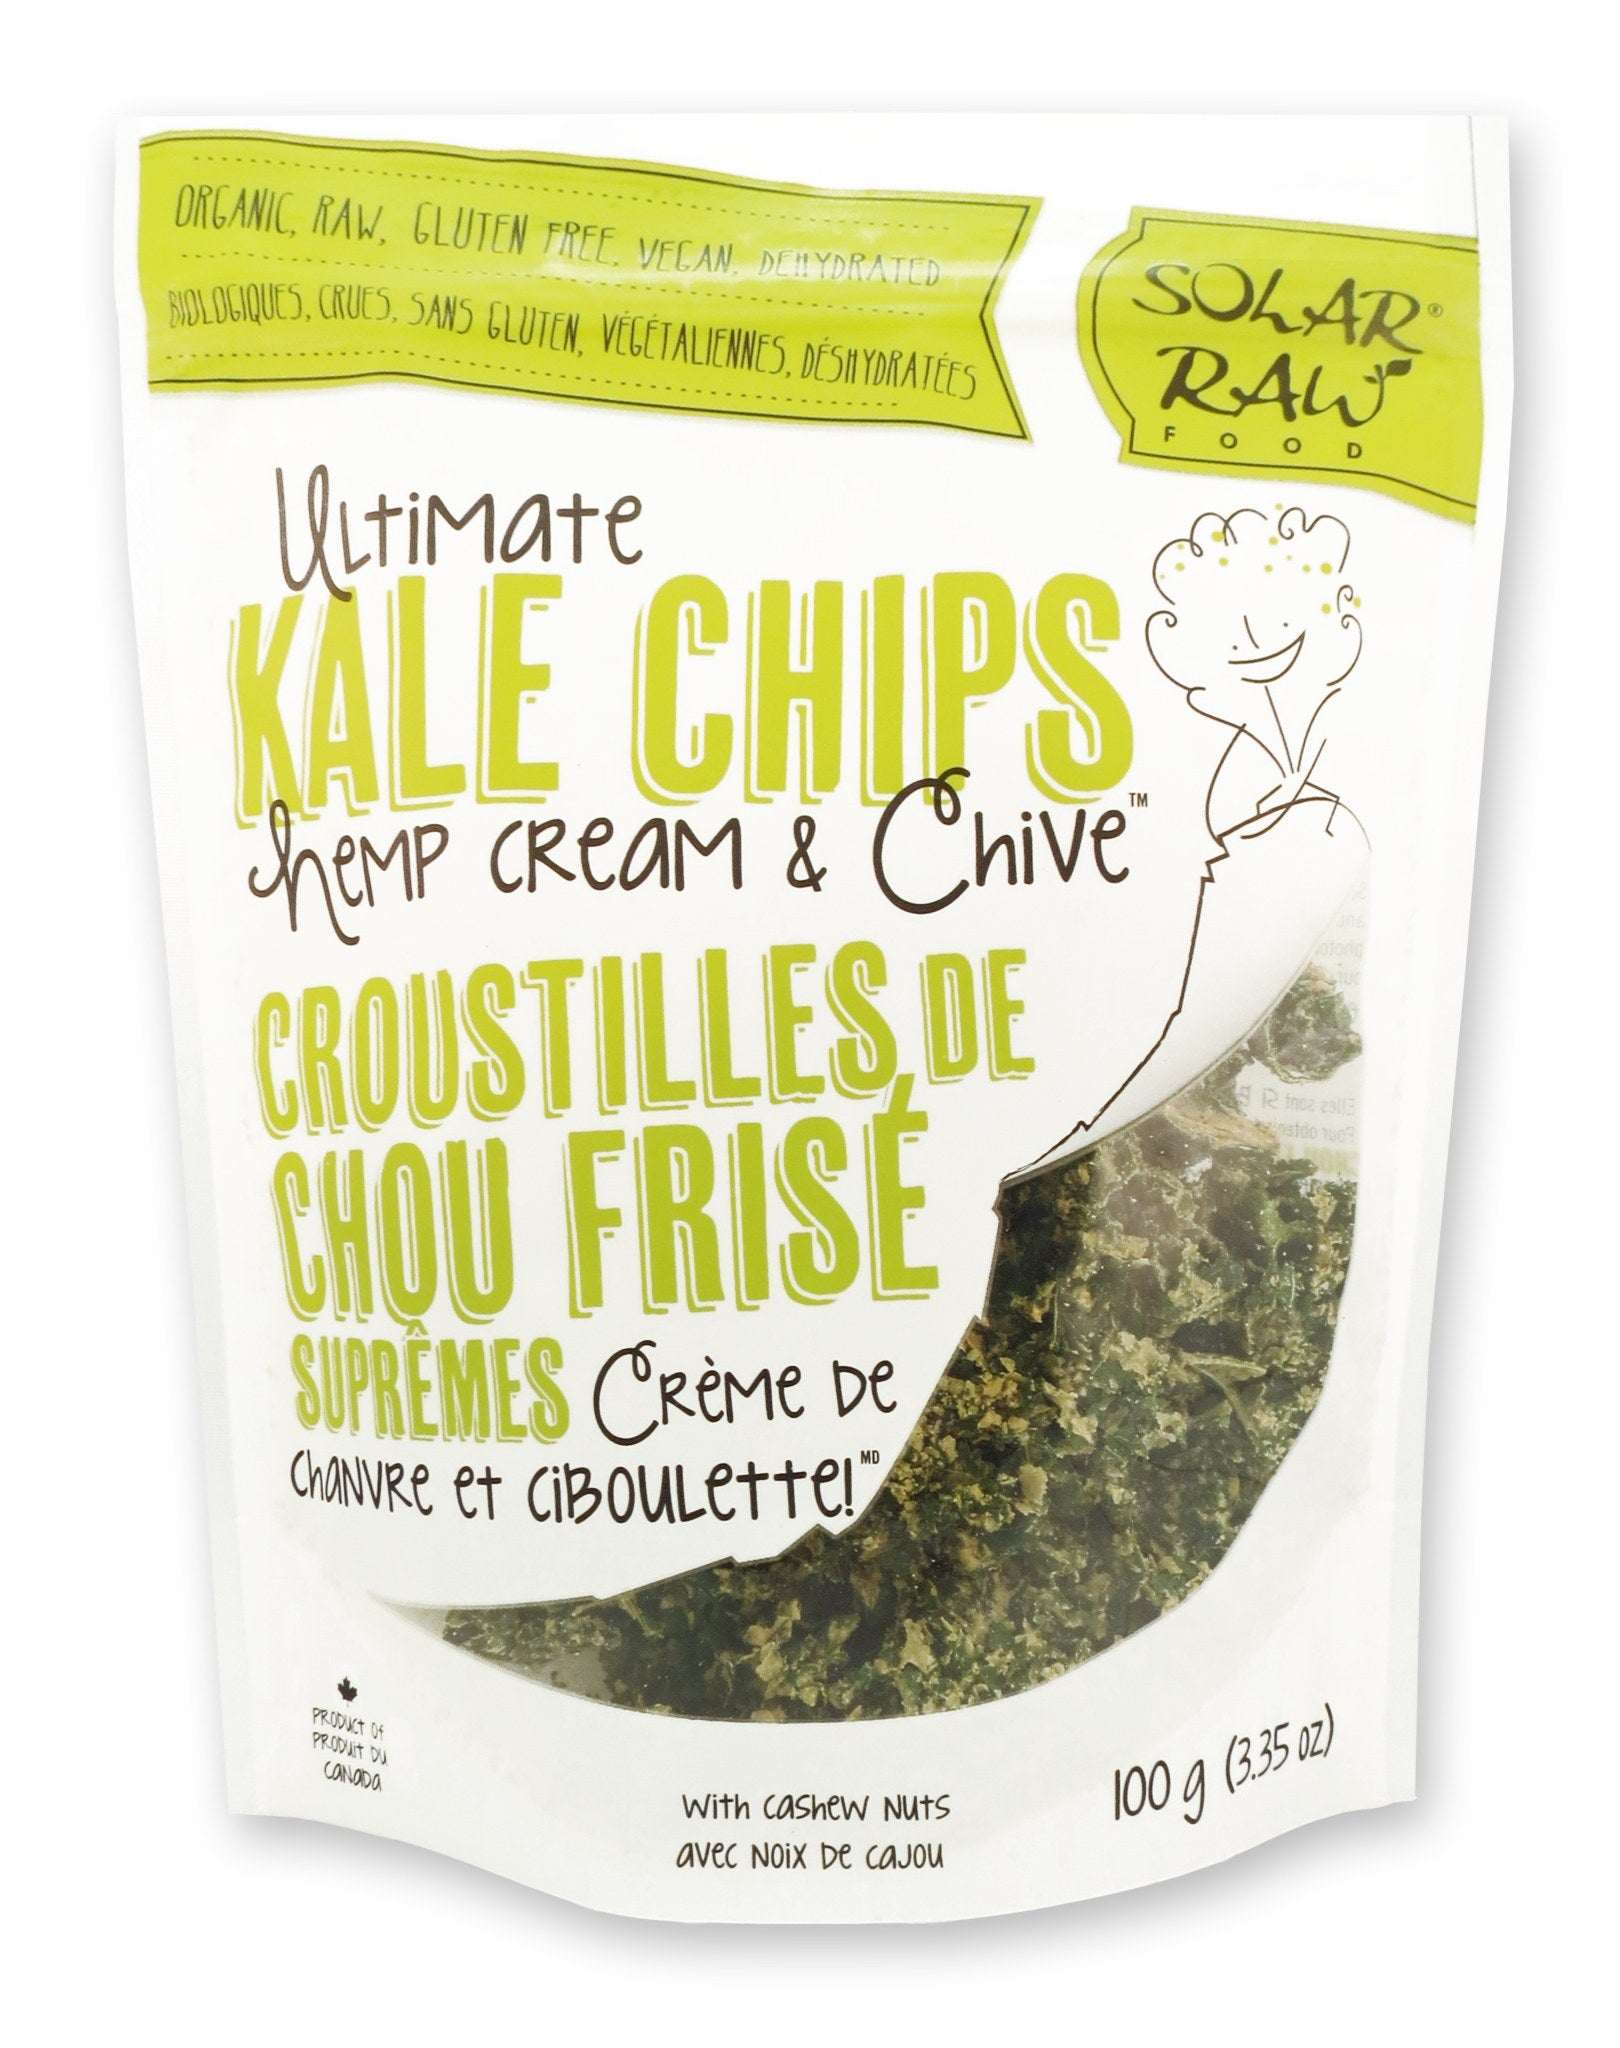 Food & Drink - Solar Raw Food - Ultimate Kale Chips, Hemp Cream